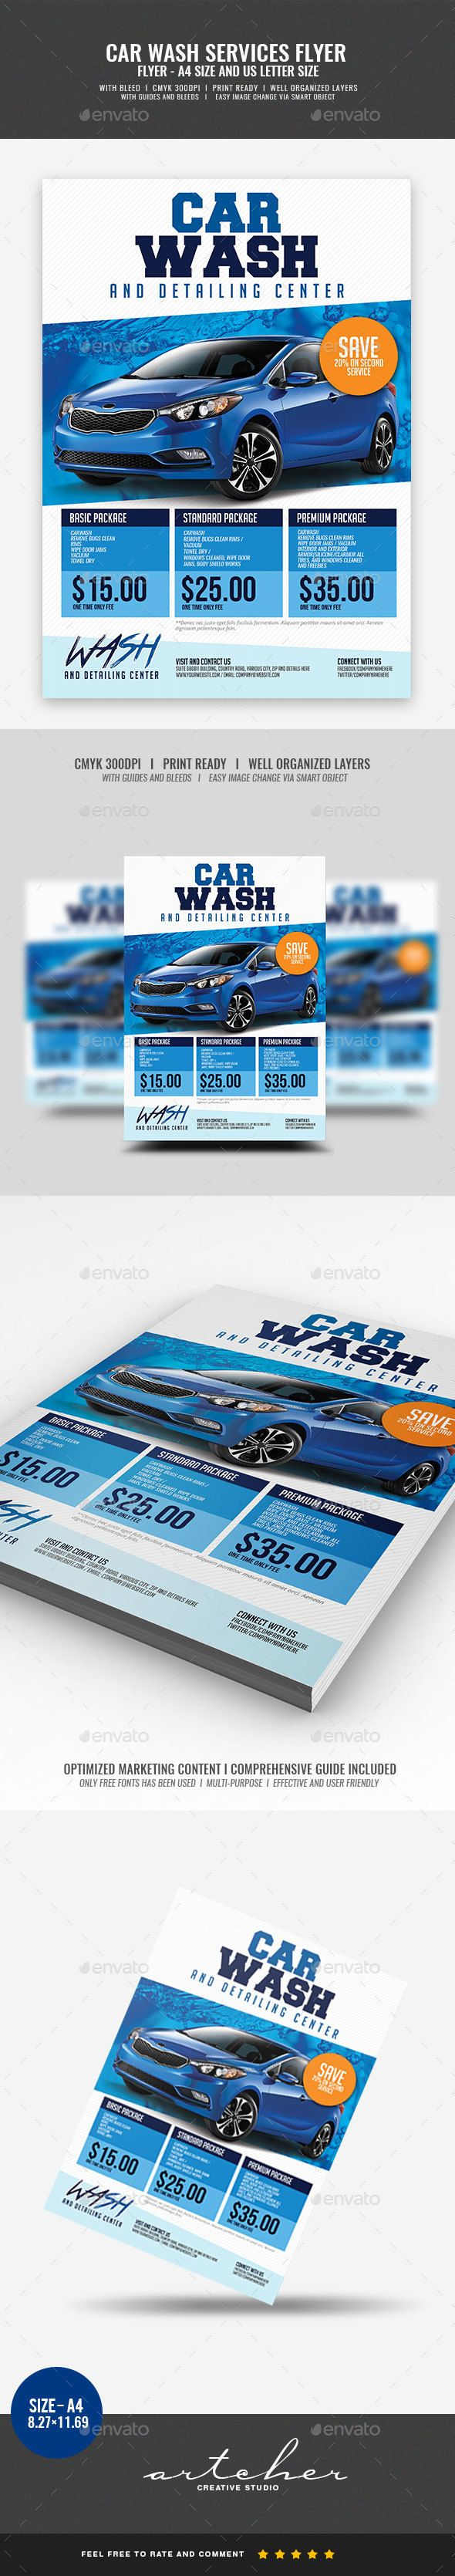 Car Wash Services Flyer Boost your company¡¯s sales and attract new customers! This Car Wash Services Flyer has been developed to help Large and Small businesses improve their Marketing Opportunity and product/brand awareness, with well-studied content for effe